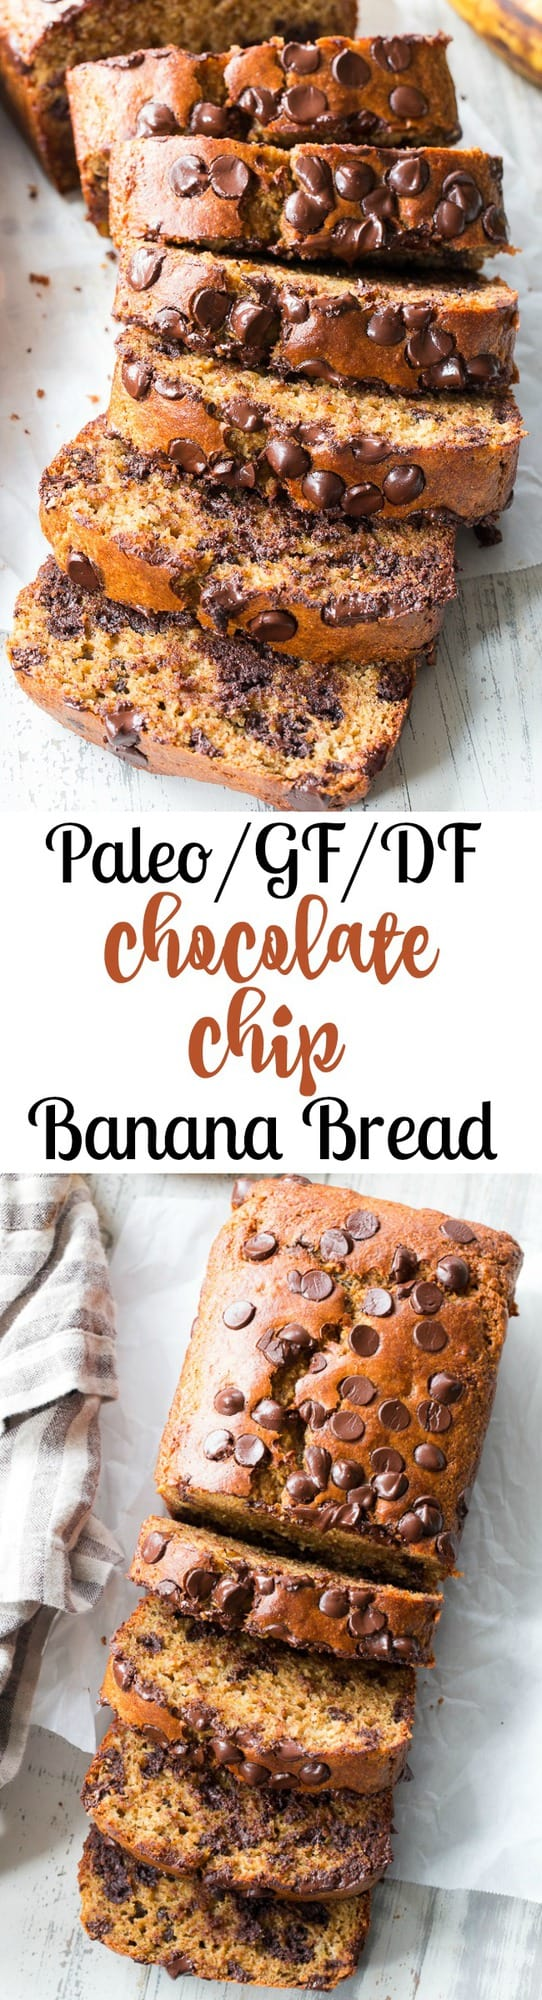 This Paleo chocolate chip banana bread is made with almond butter and almond flour, hearty and delicious with the perfect amount of sweetness.  Gluten-free, dairy-free, grain free, family approved, and great for breakfast or dessert!